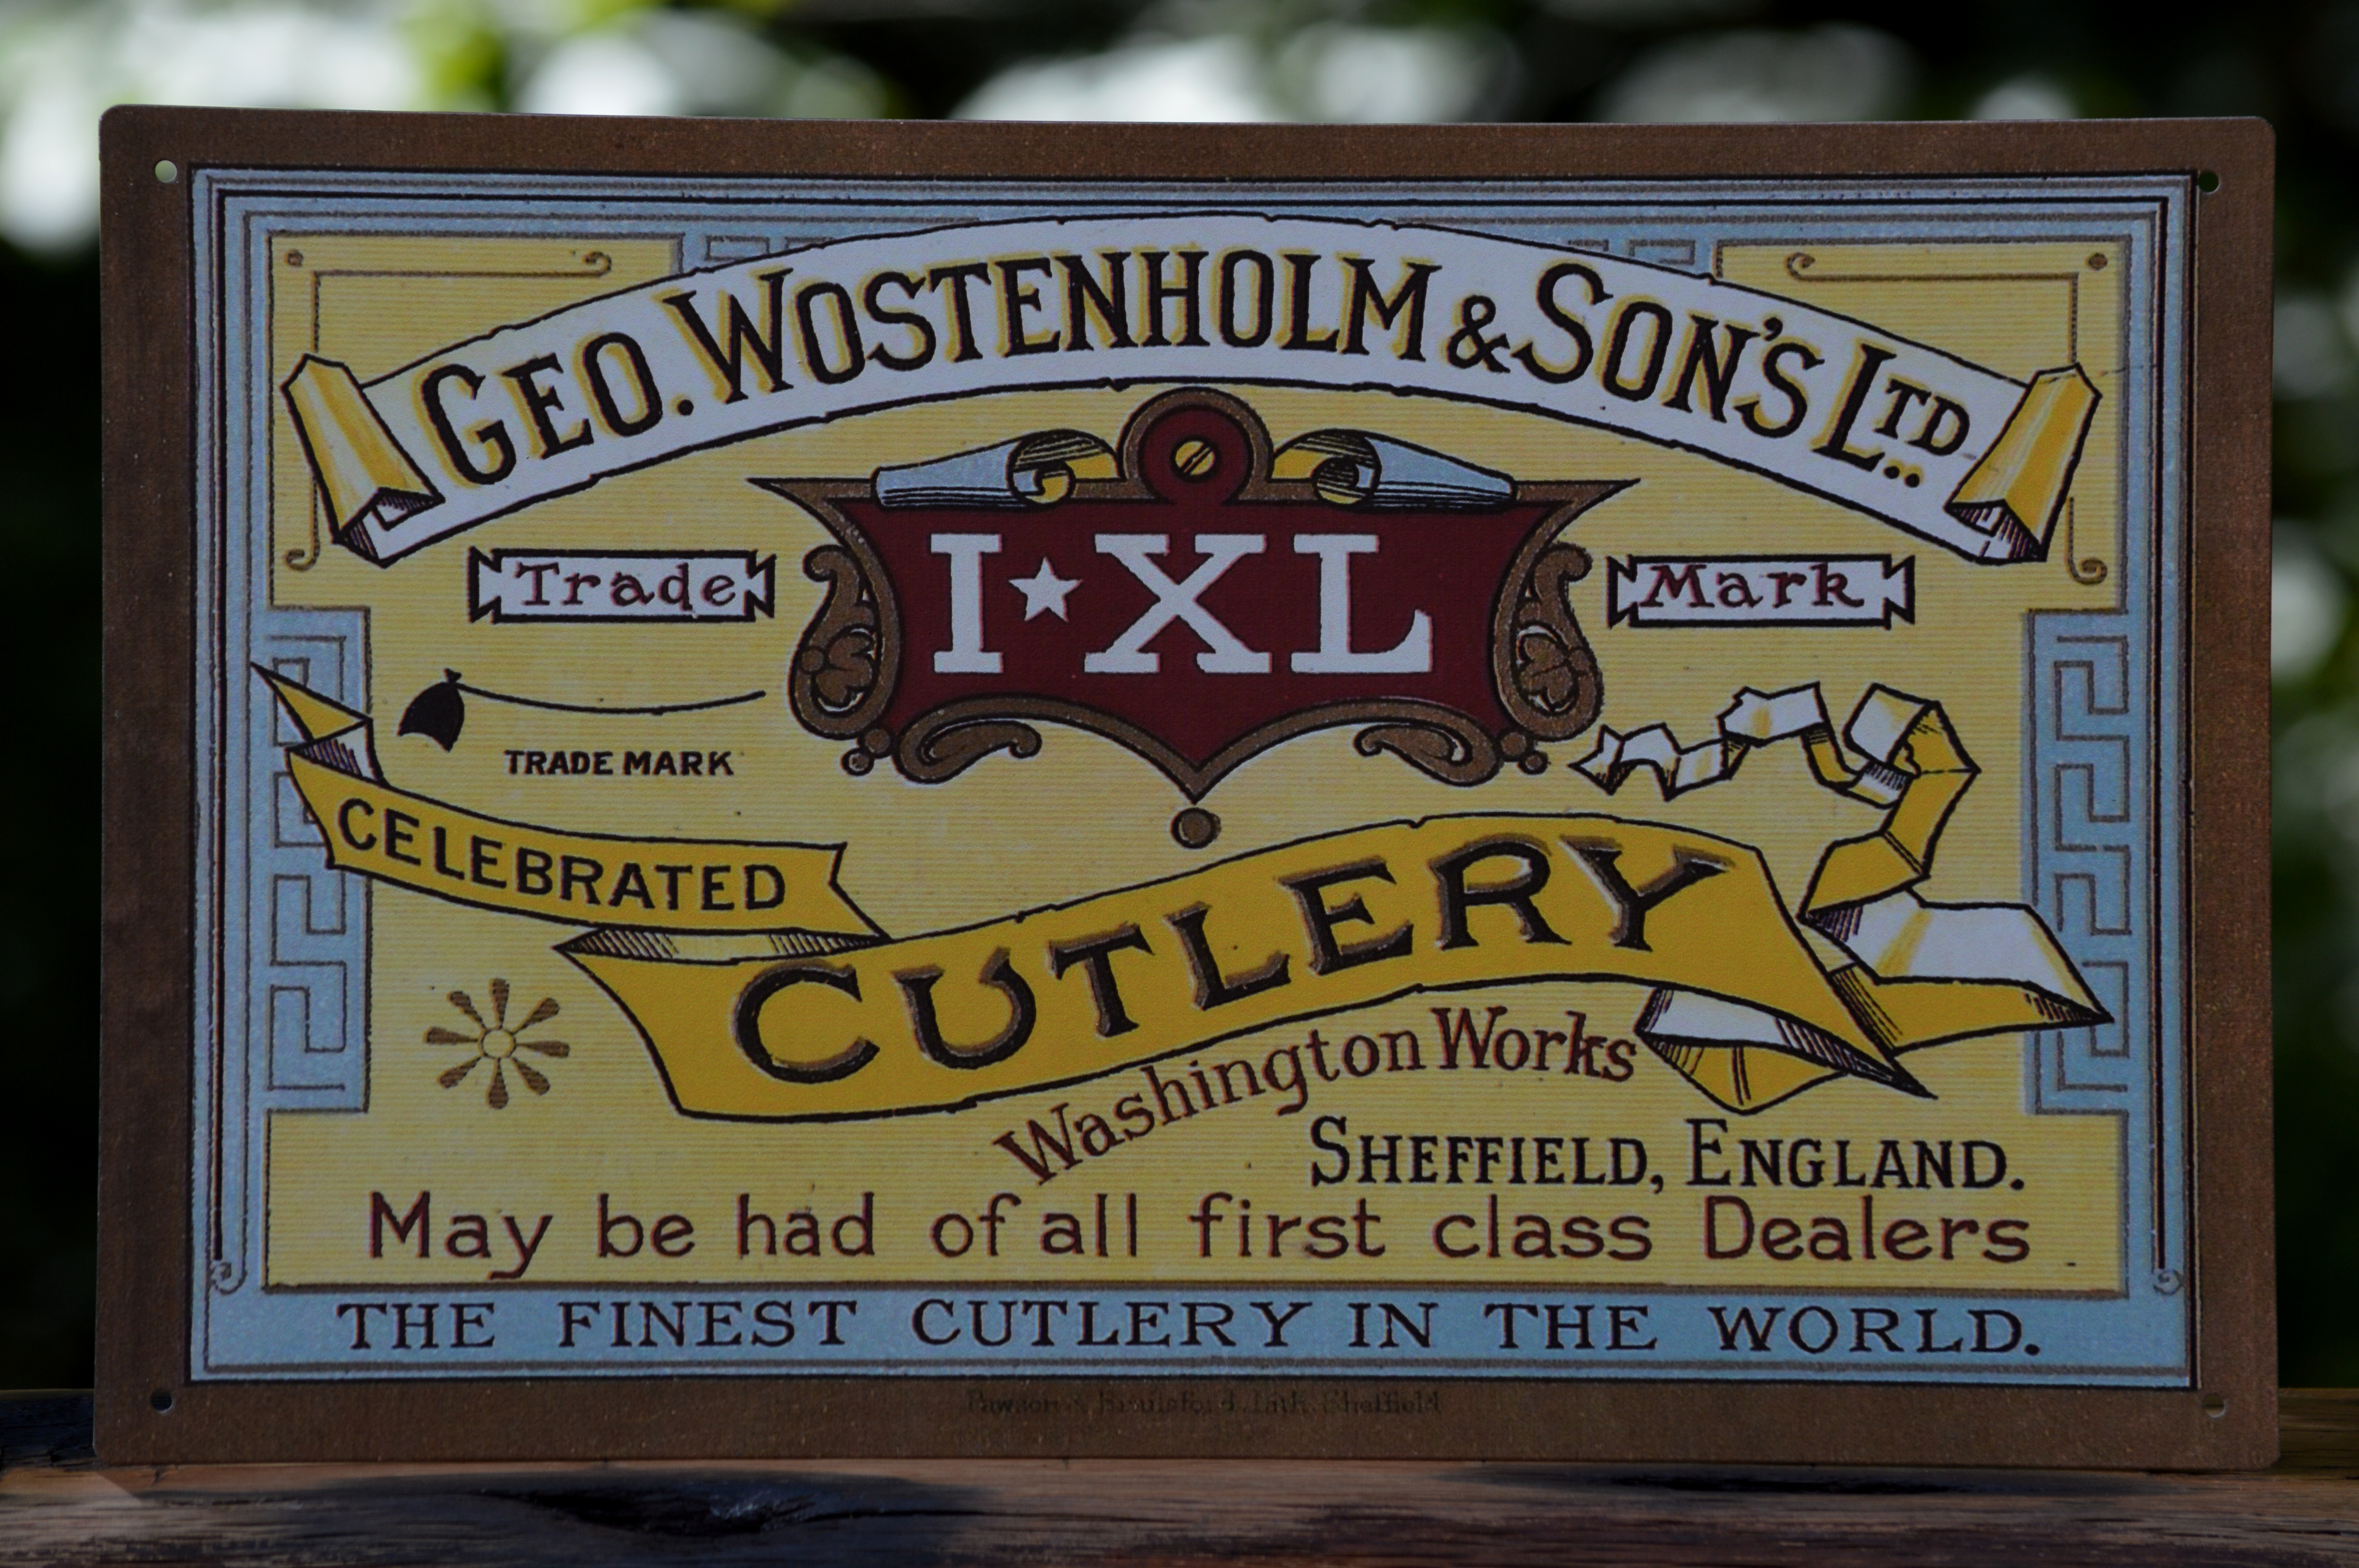 George Wostenholm & Son's I*XL Tin Sign